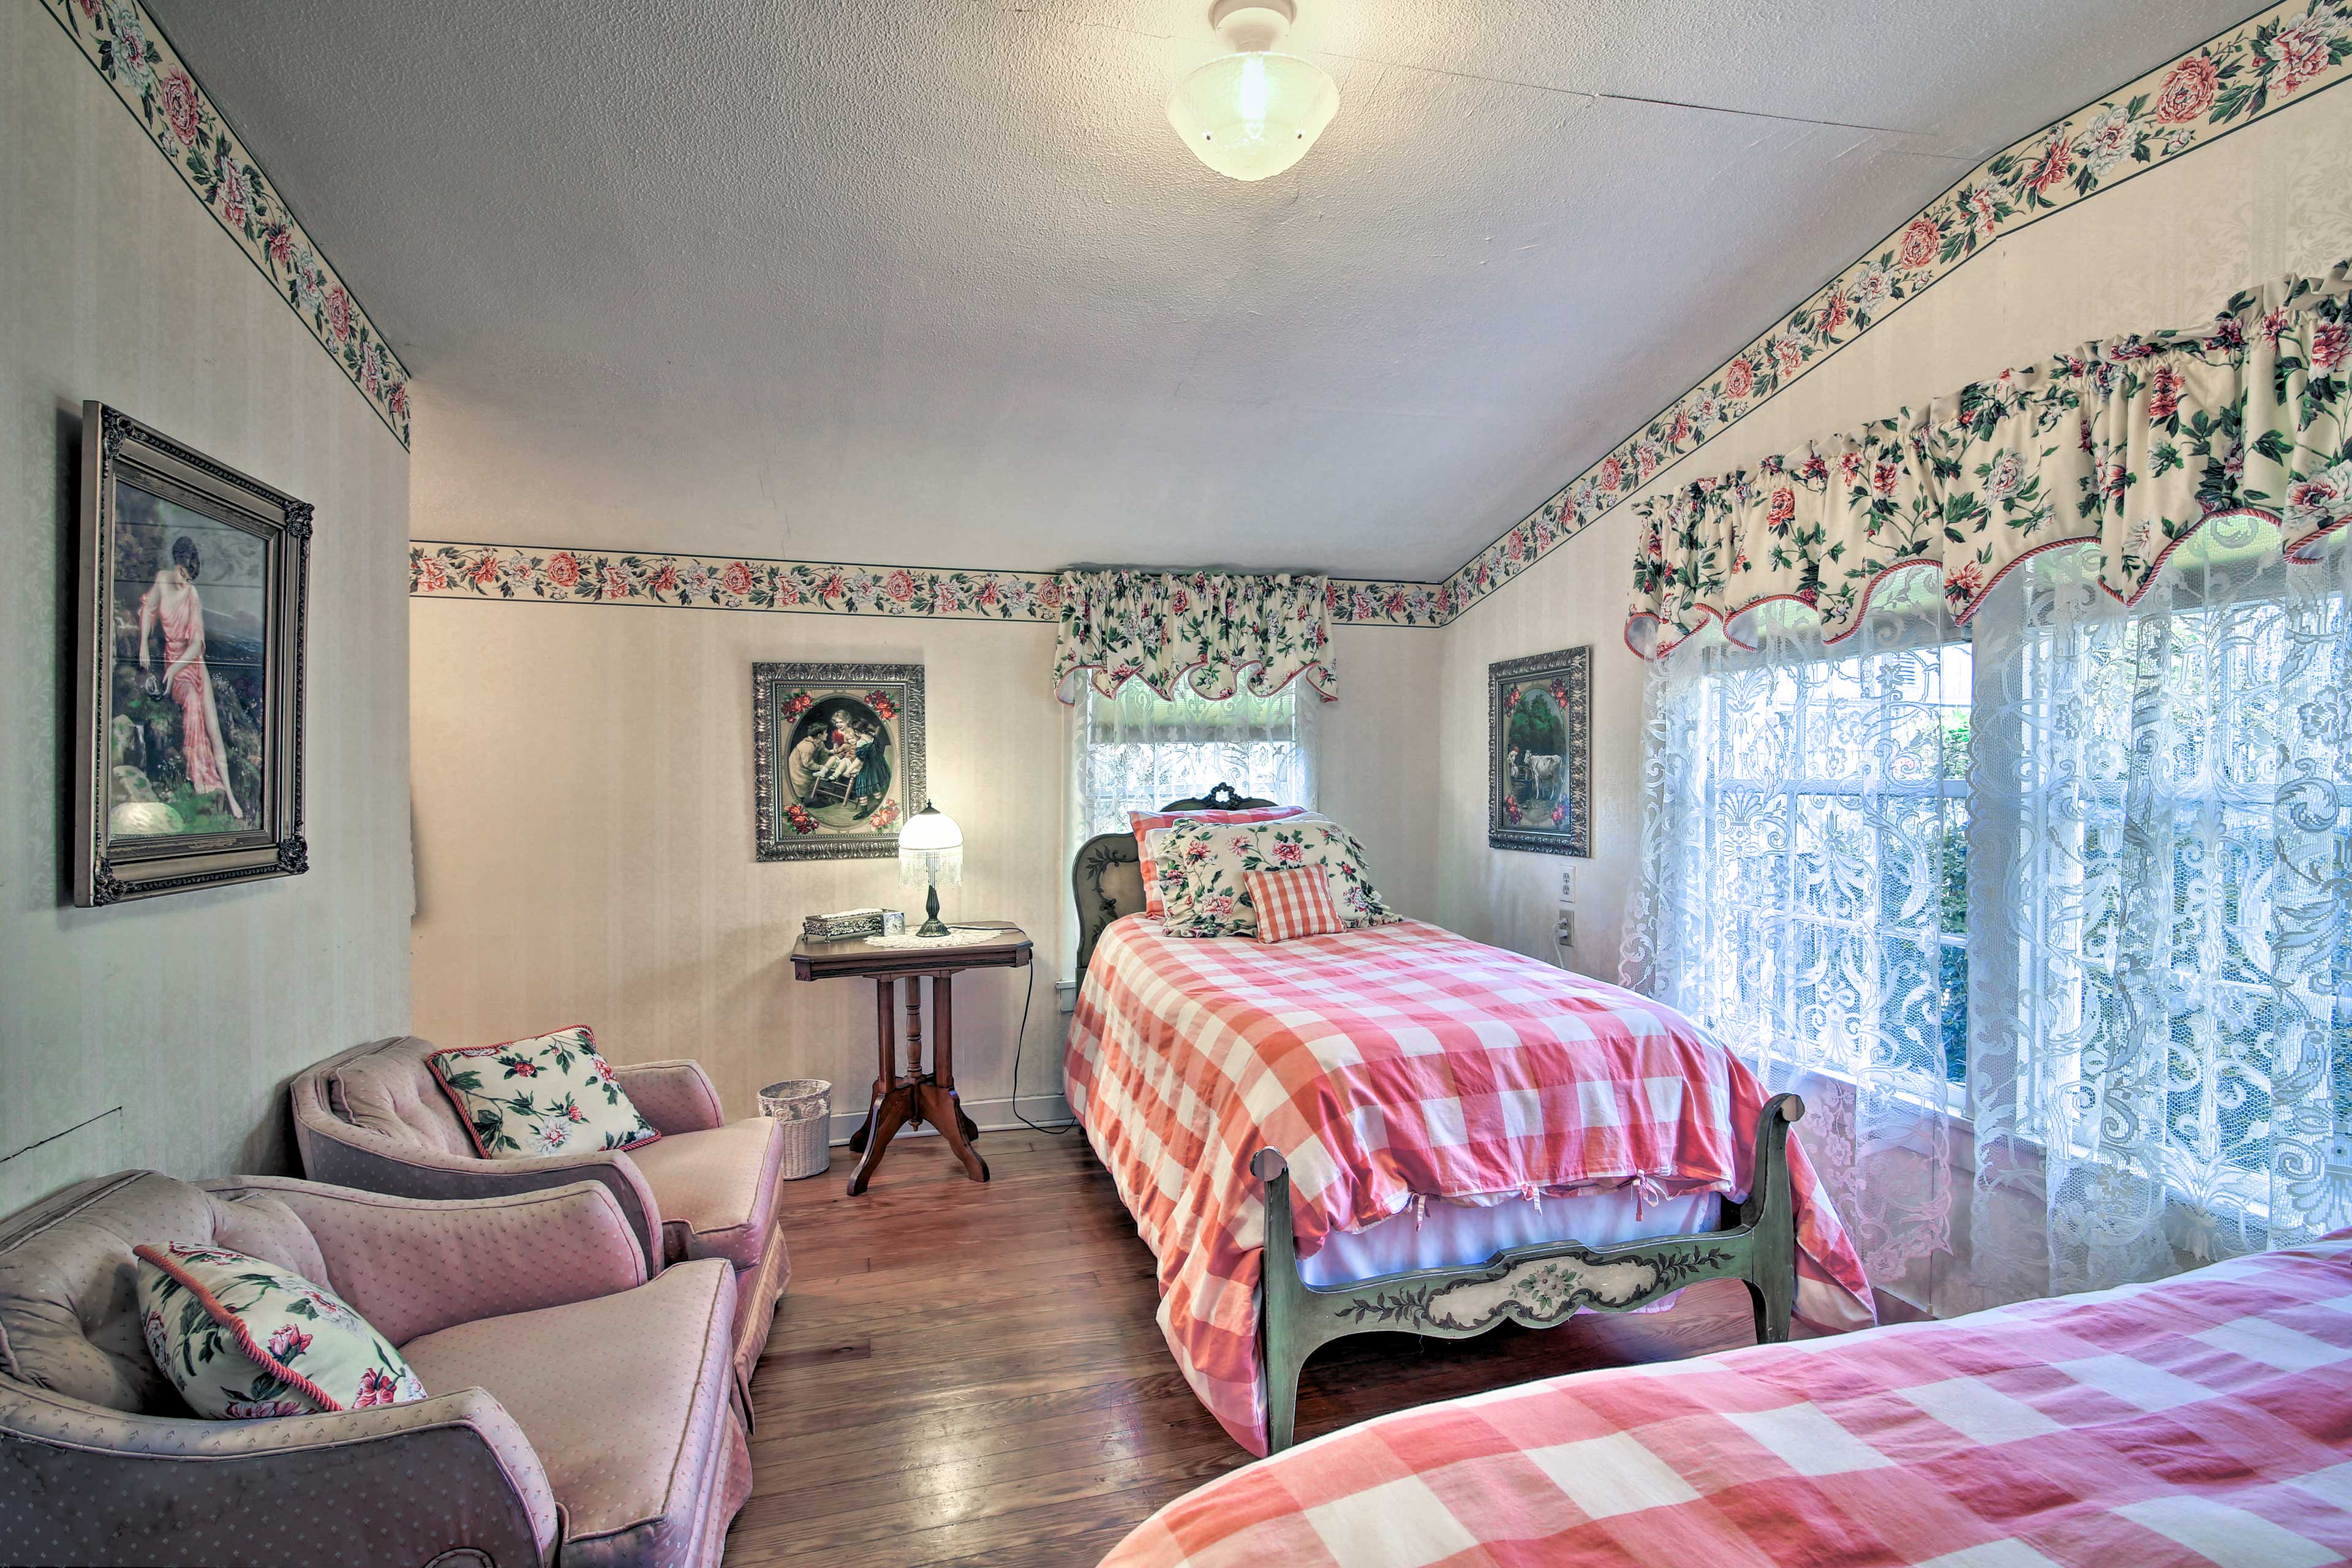 This room has 2 twin beds.